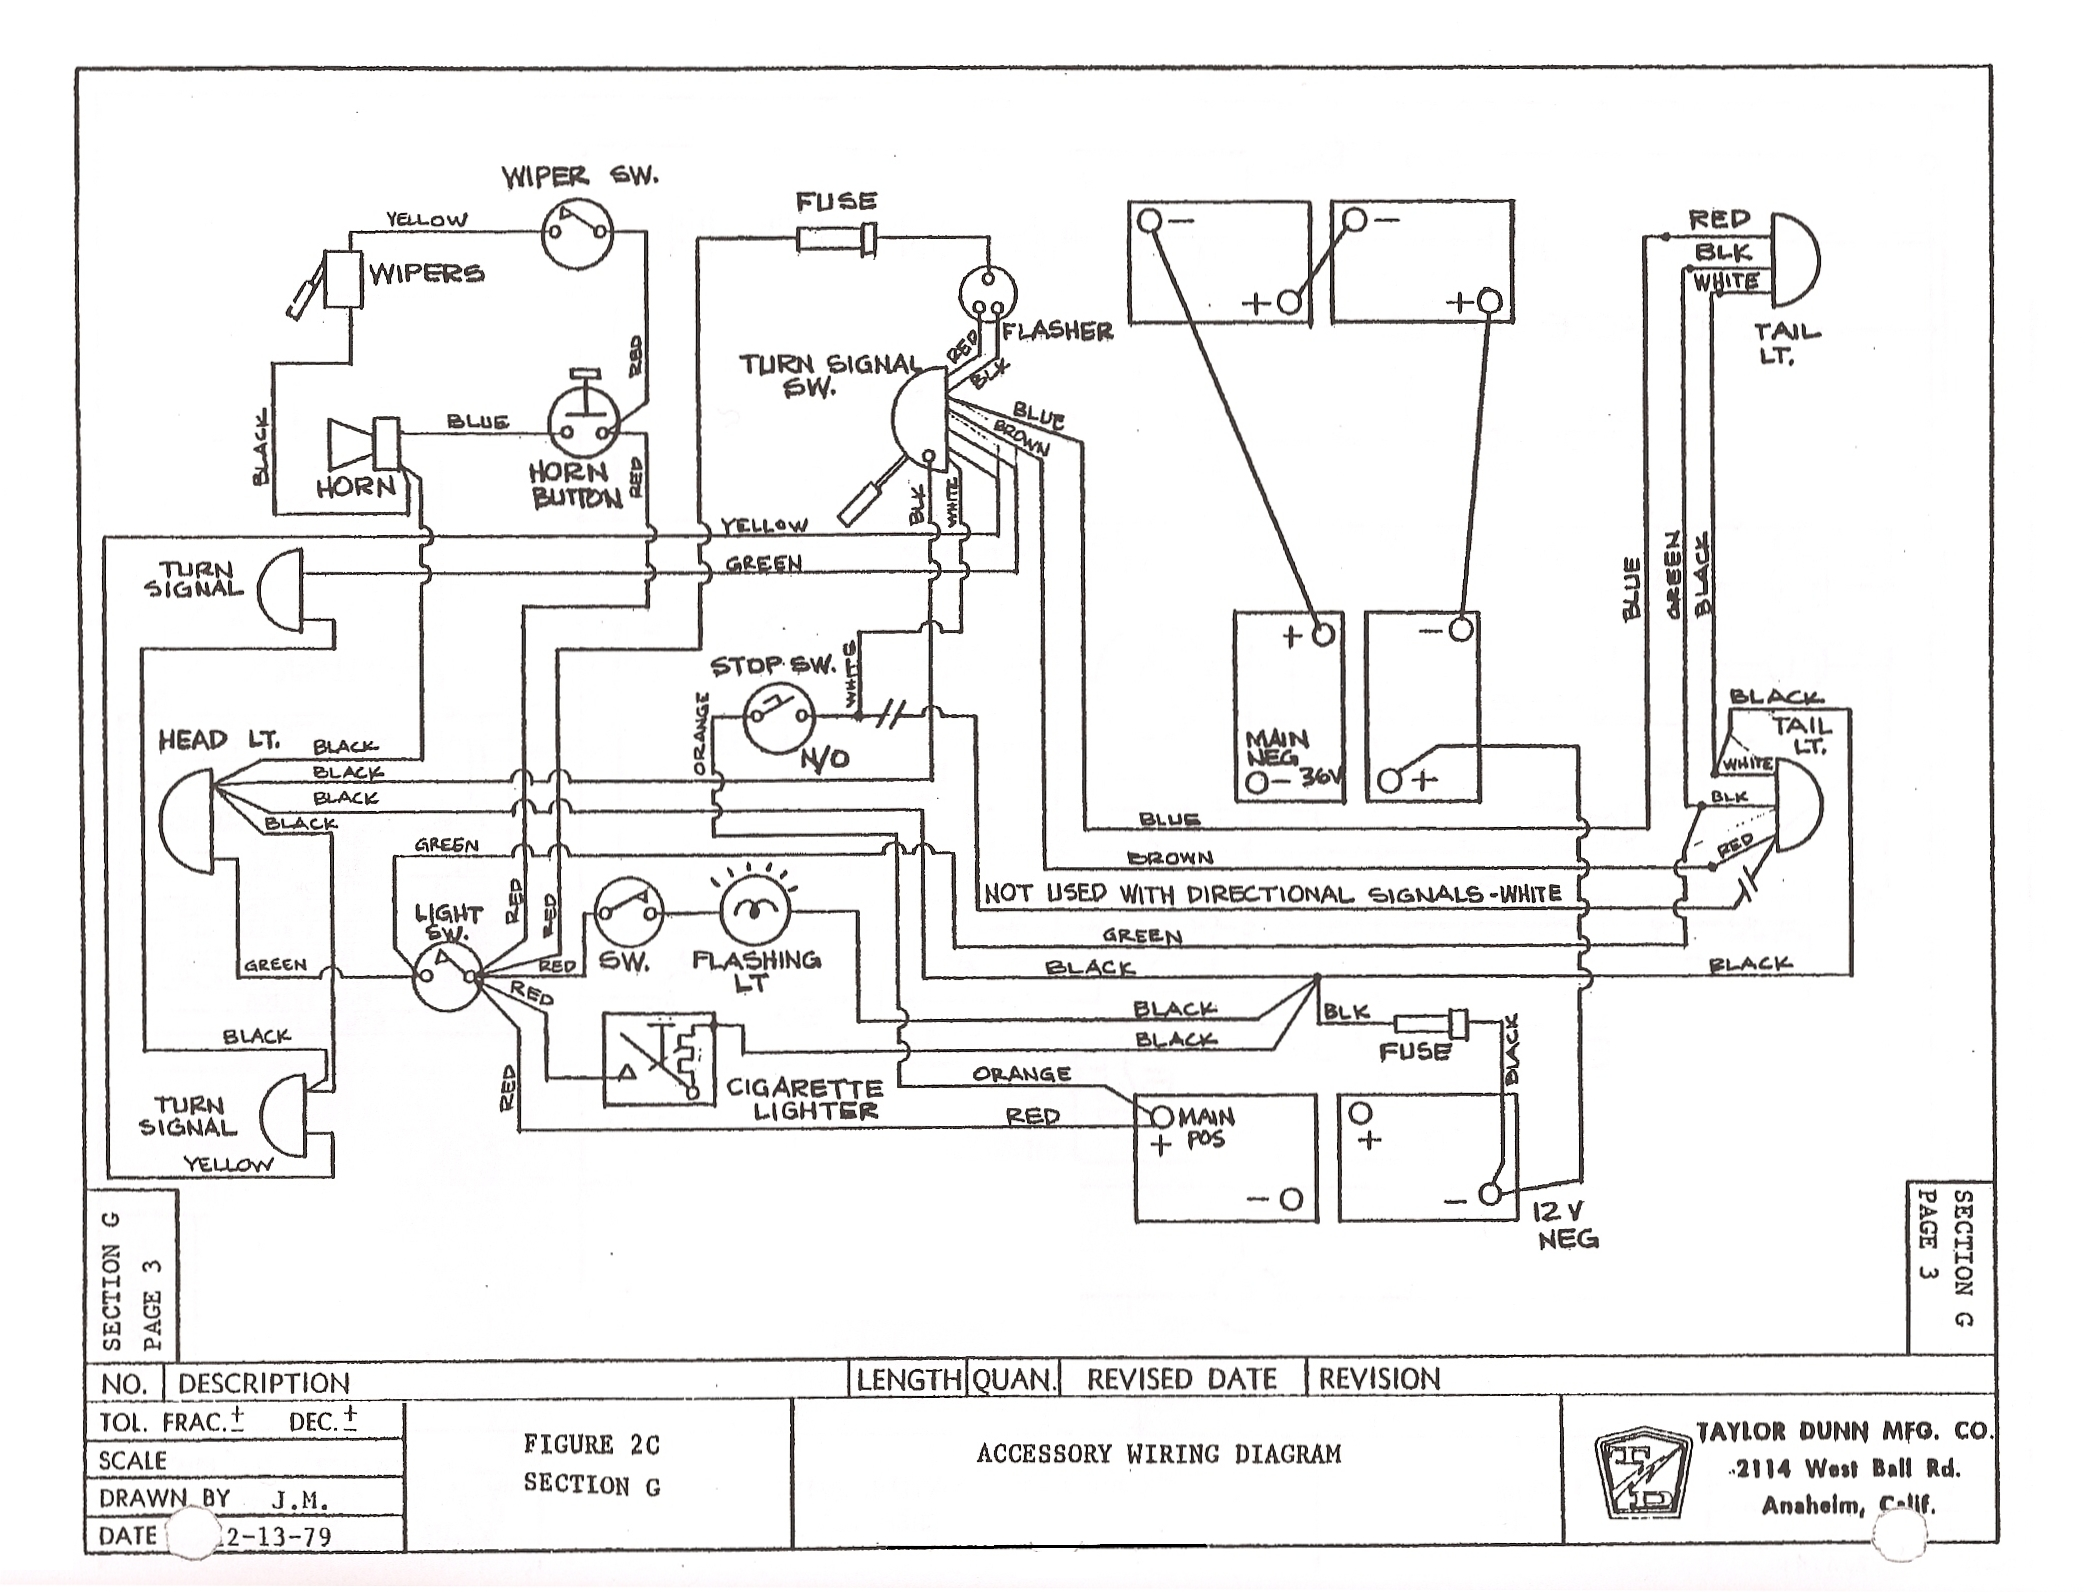 TD_GT370_71_81to85_003 taylor dunn wiring diagram wiring diagram and schematic design taylor dunn wiring harness at mr168.co